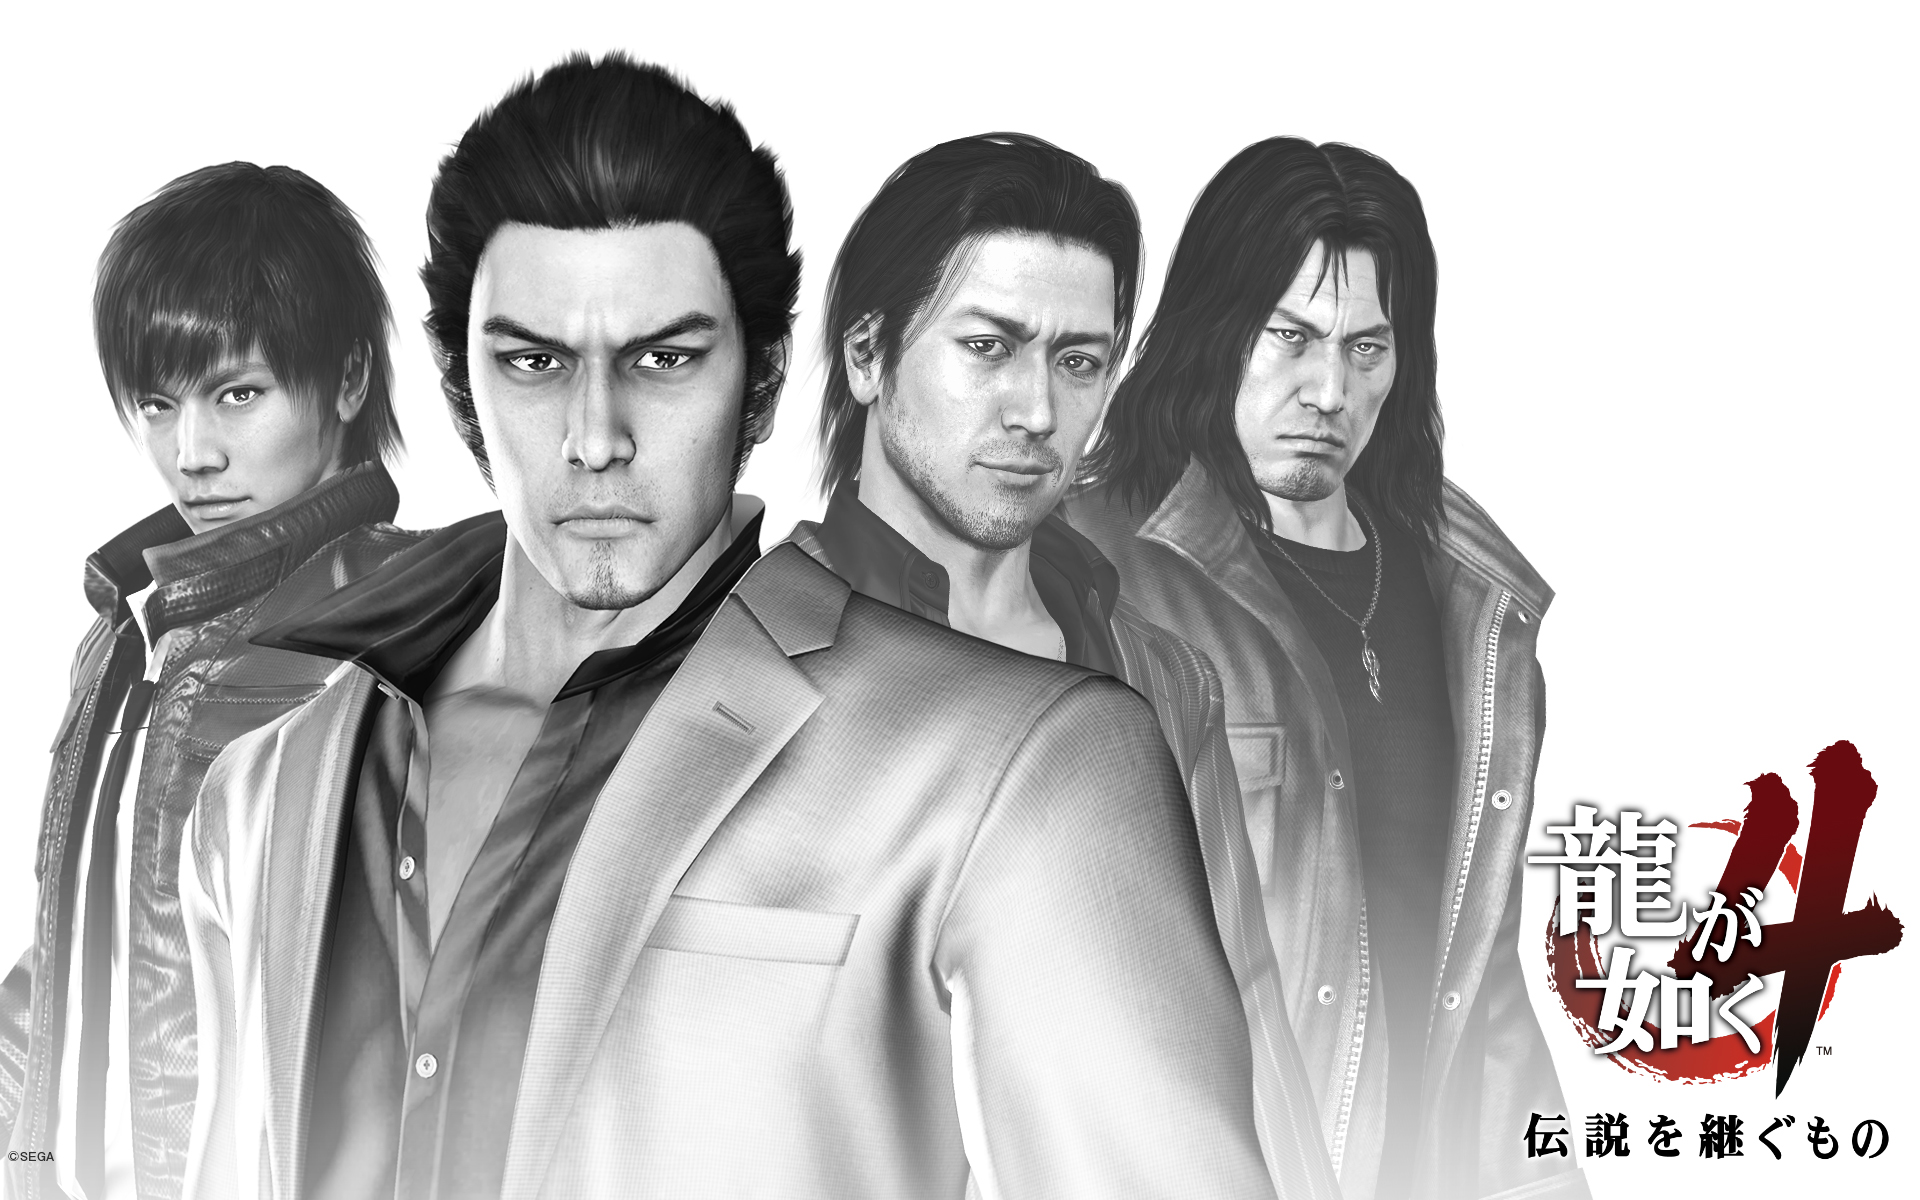 Yakuza 4 is being localized for Europe